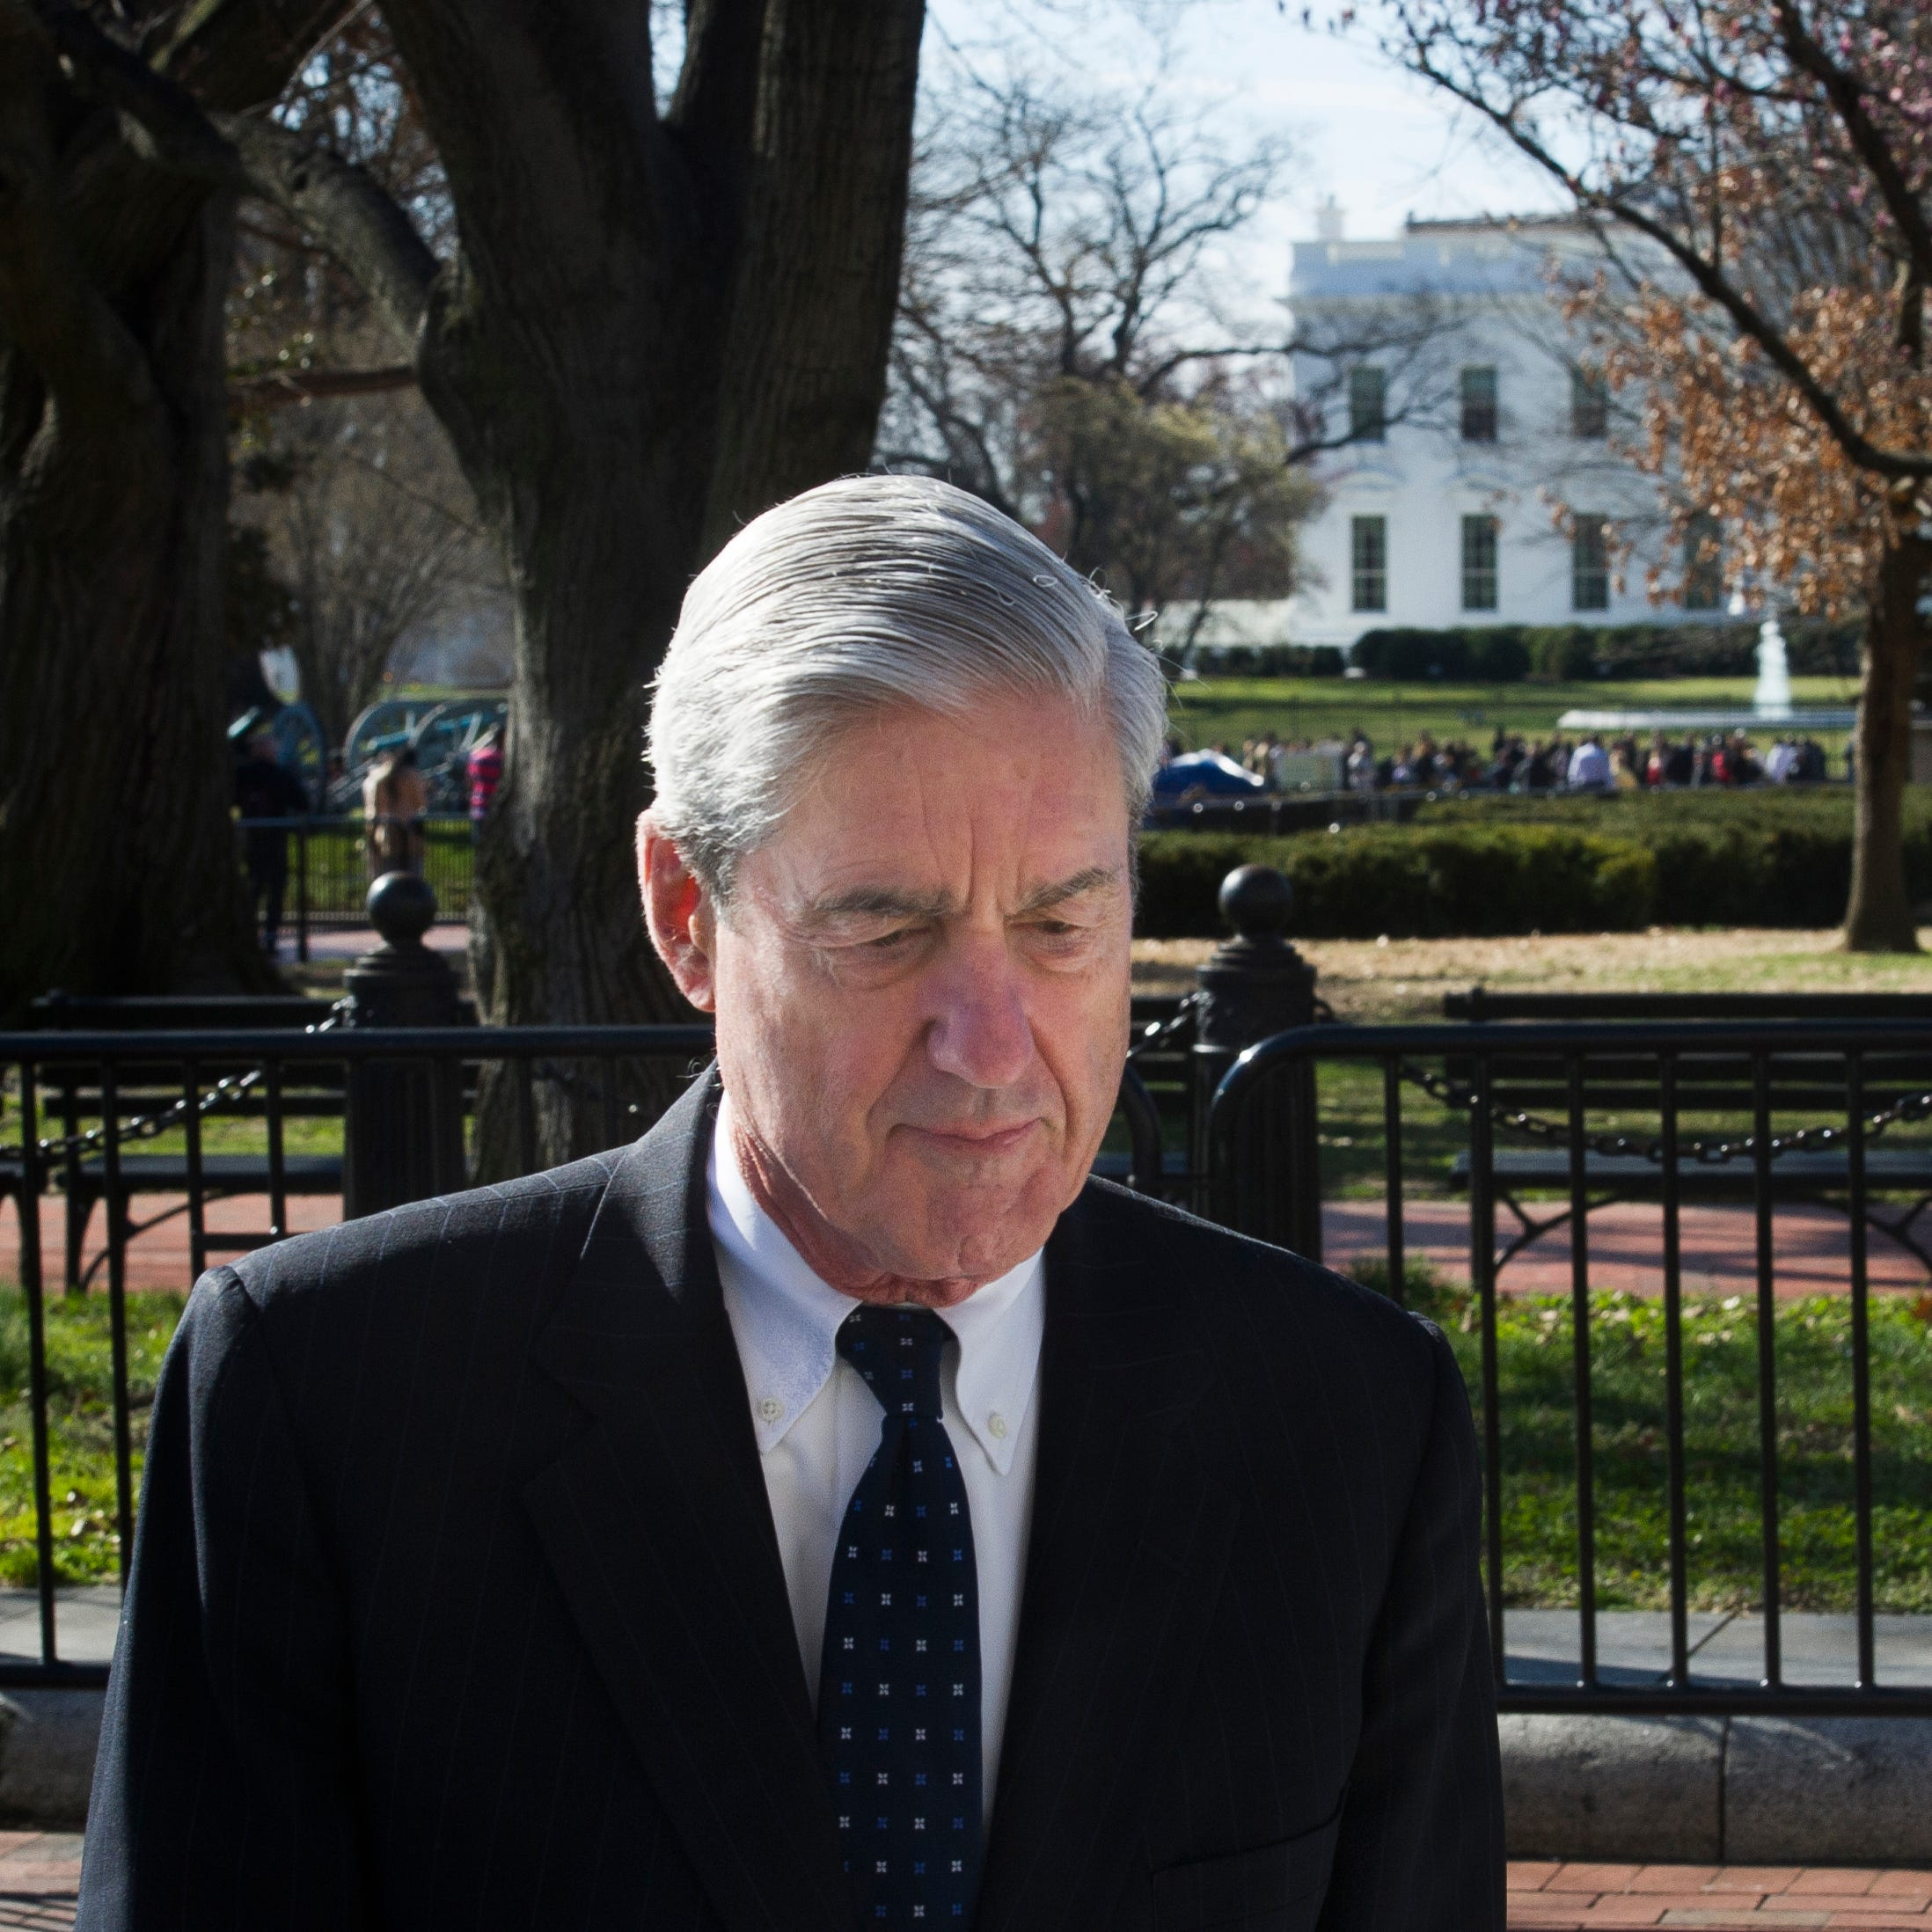 After lengthy probe, report people just want Mueller to say what it all means